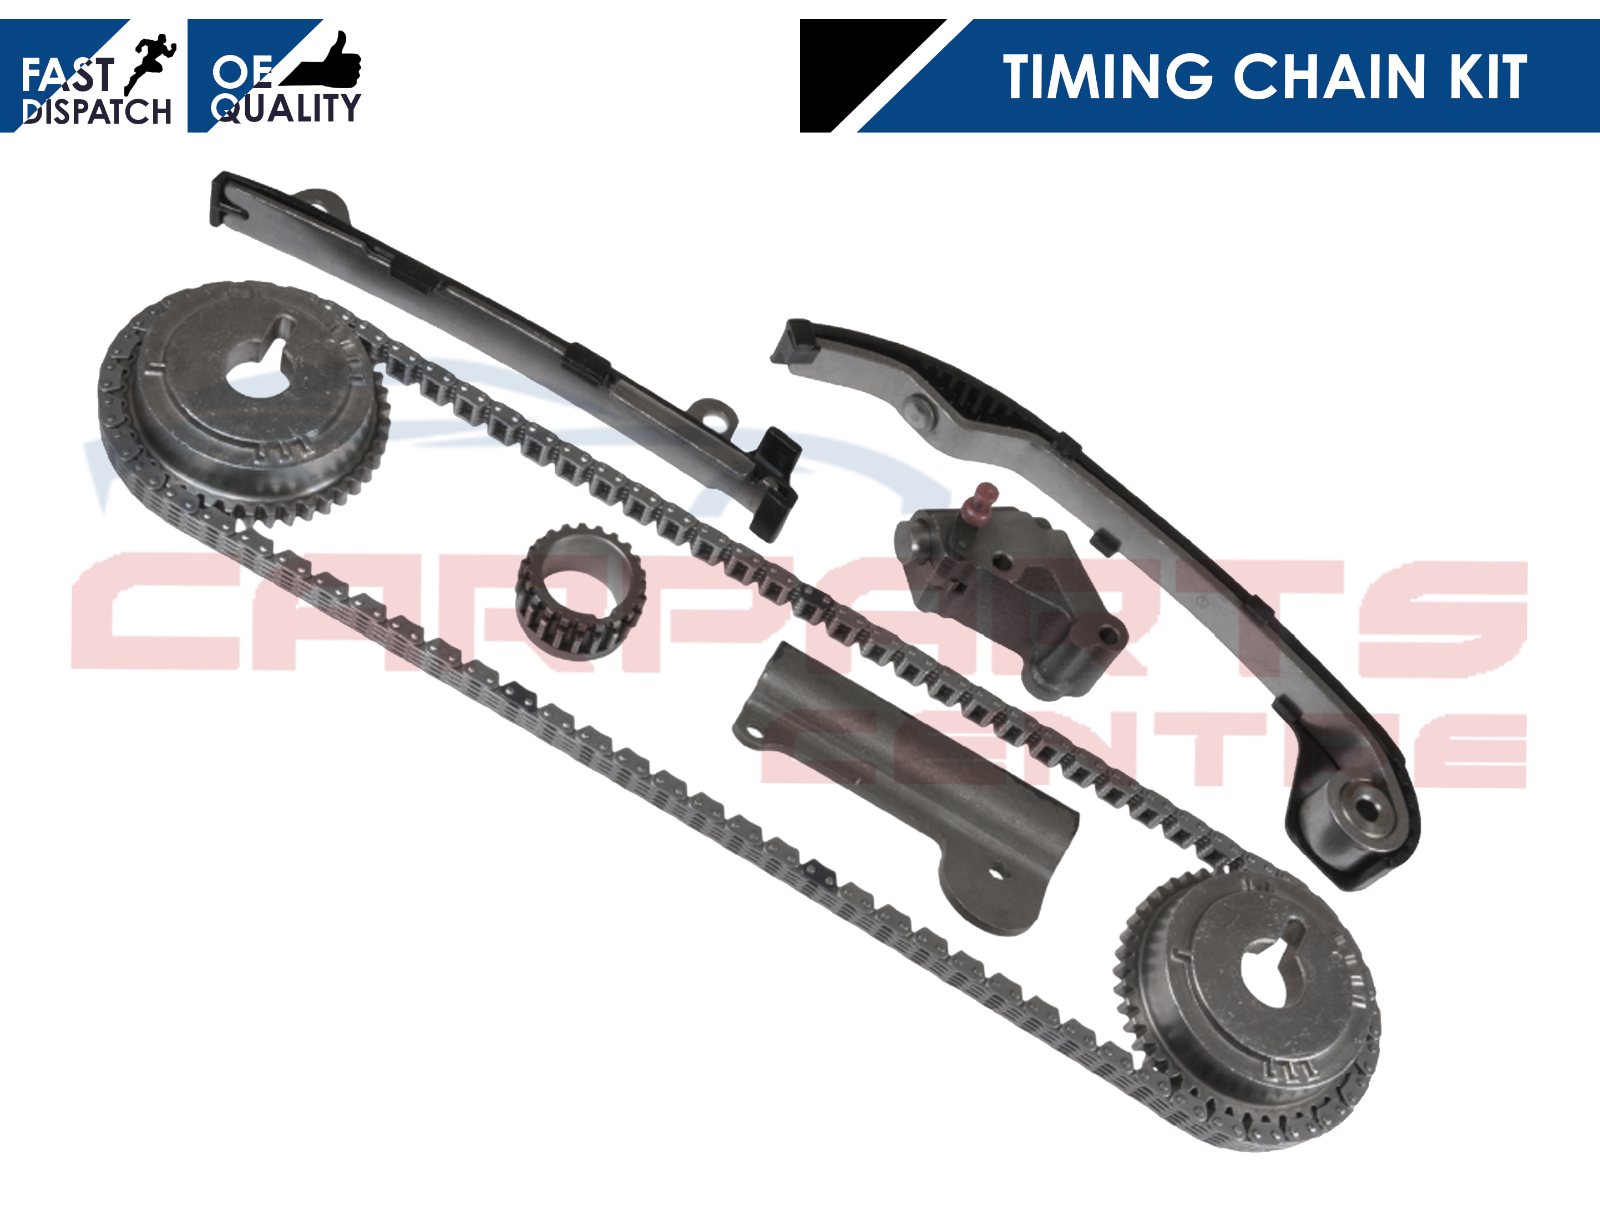 FOR NISSAN ALMERA TINO 1.8 2002 TIMING CHAIN KIT TENSIONER GUIDE RAIL SPROCKETS